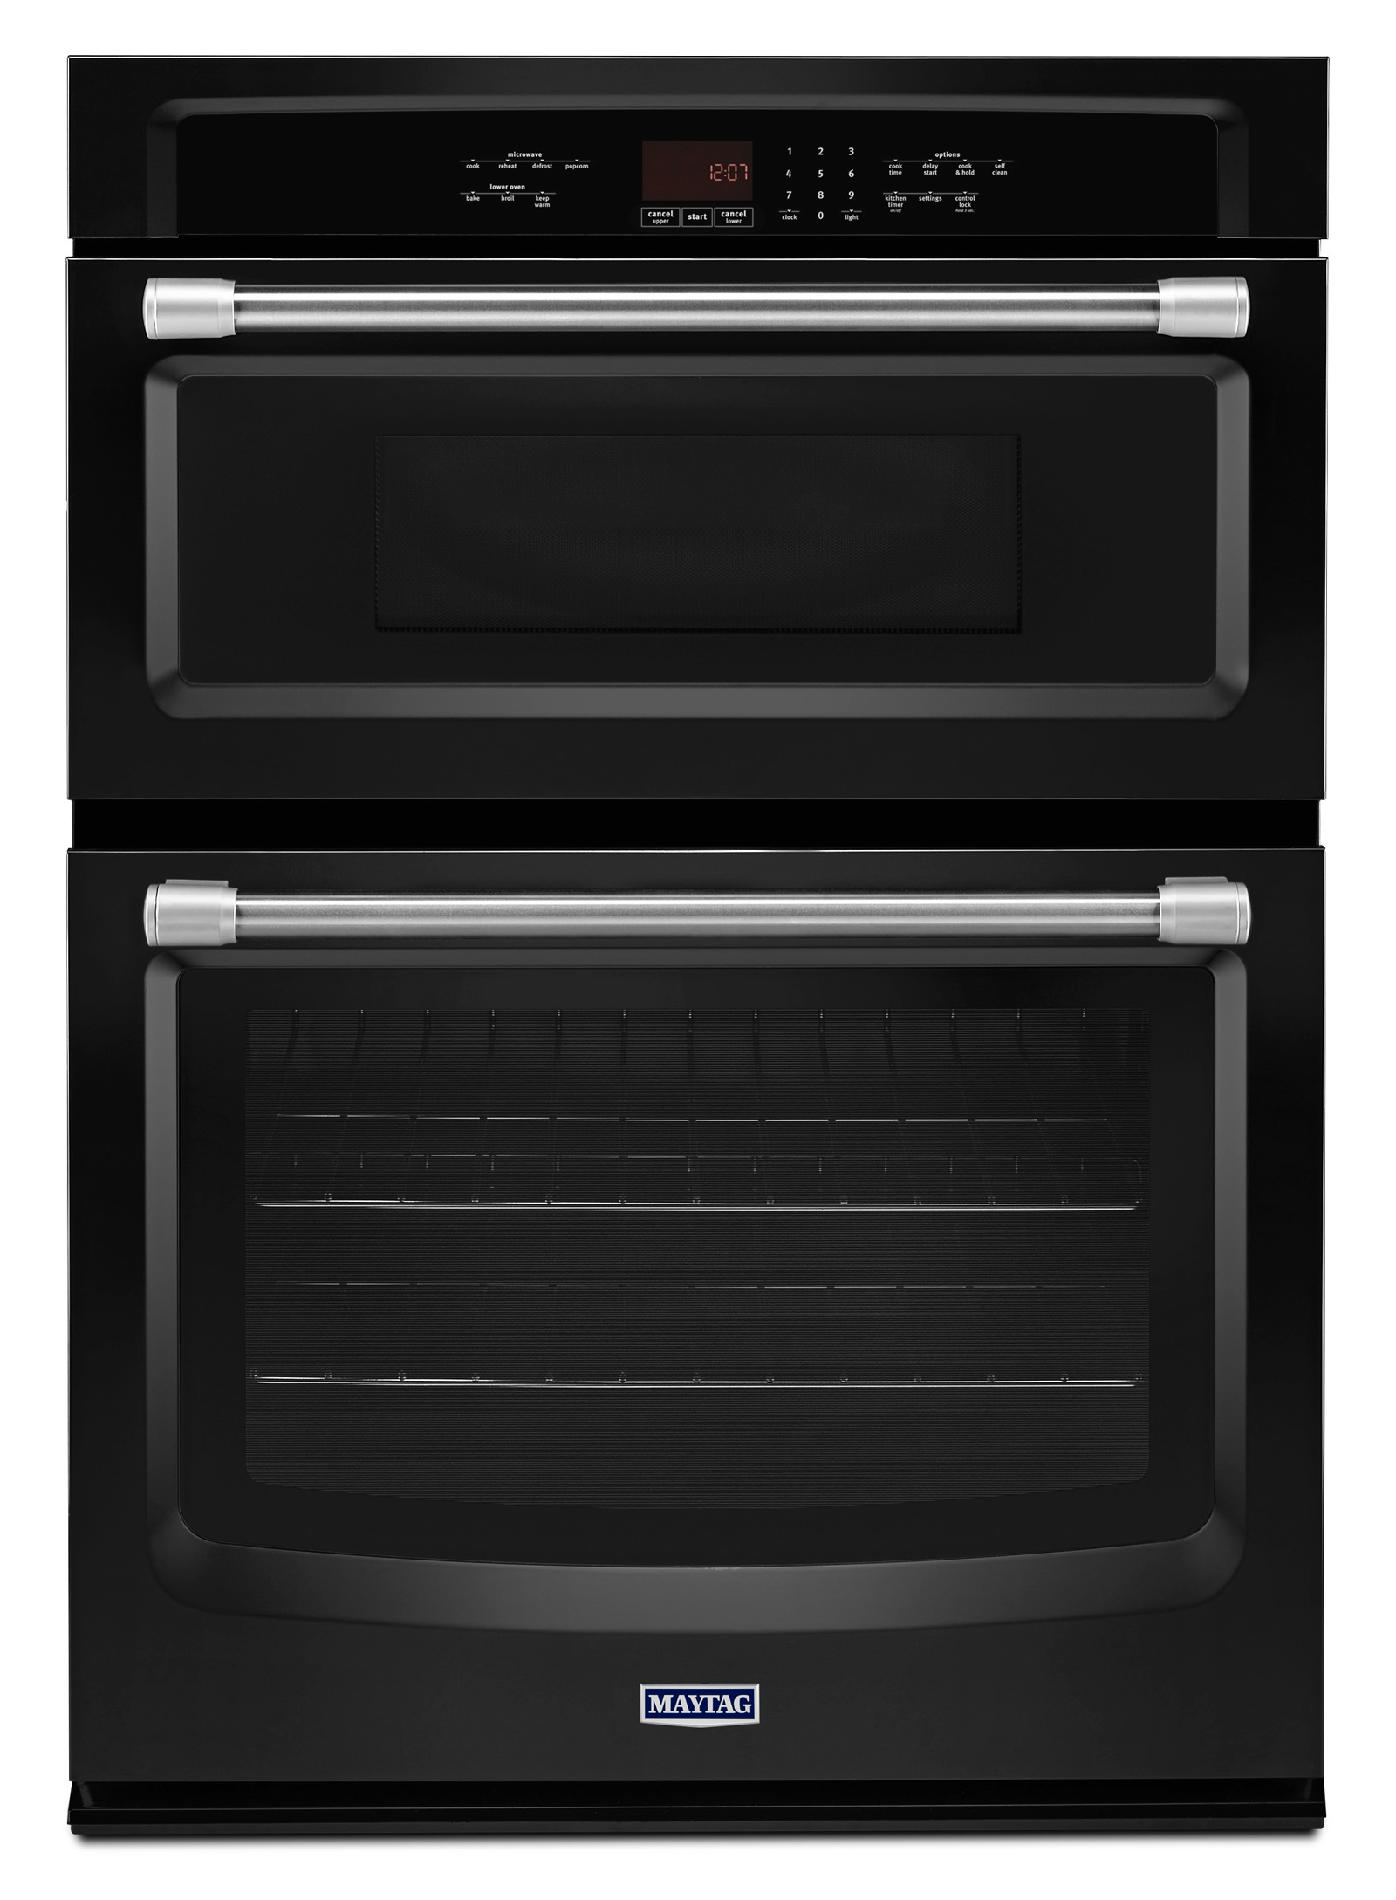 Maytag 30 Combination Wall Oven w/ Precision Cooking™ System - Black w/ Stainless Handle